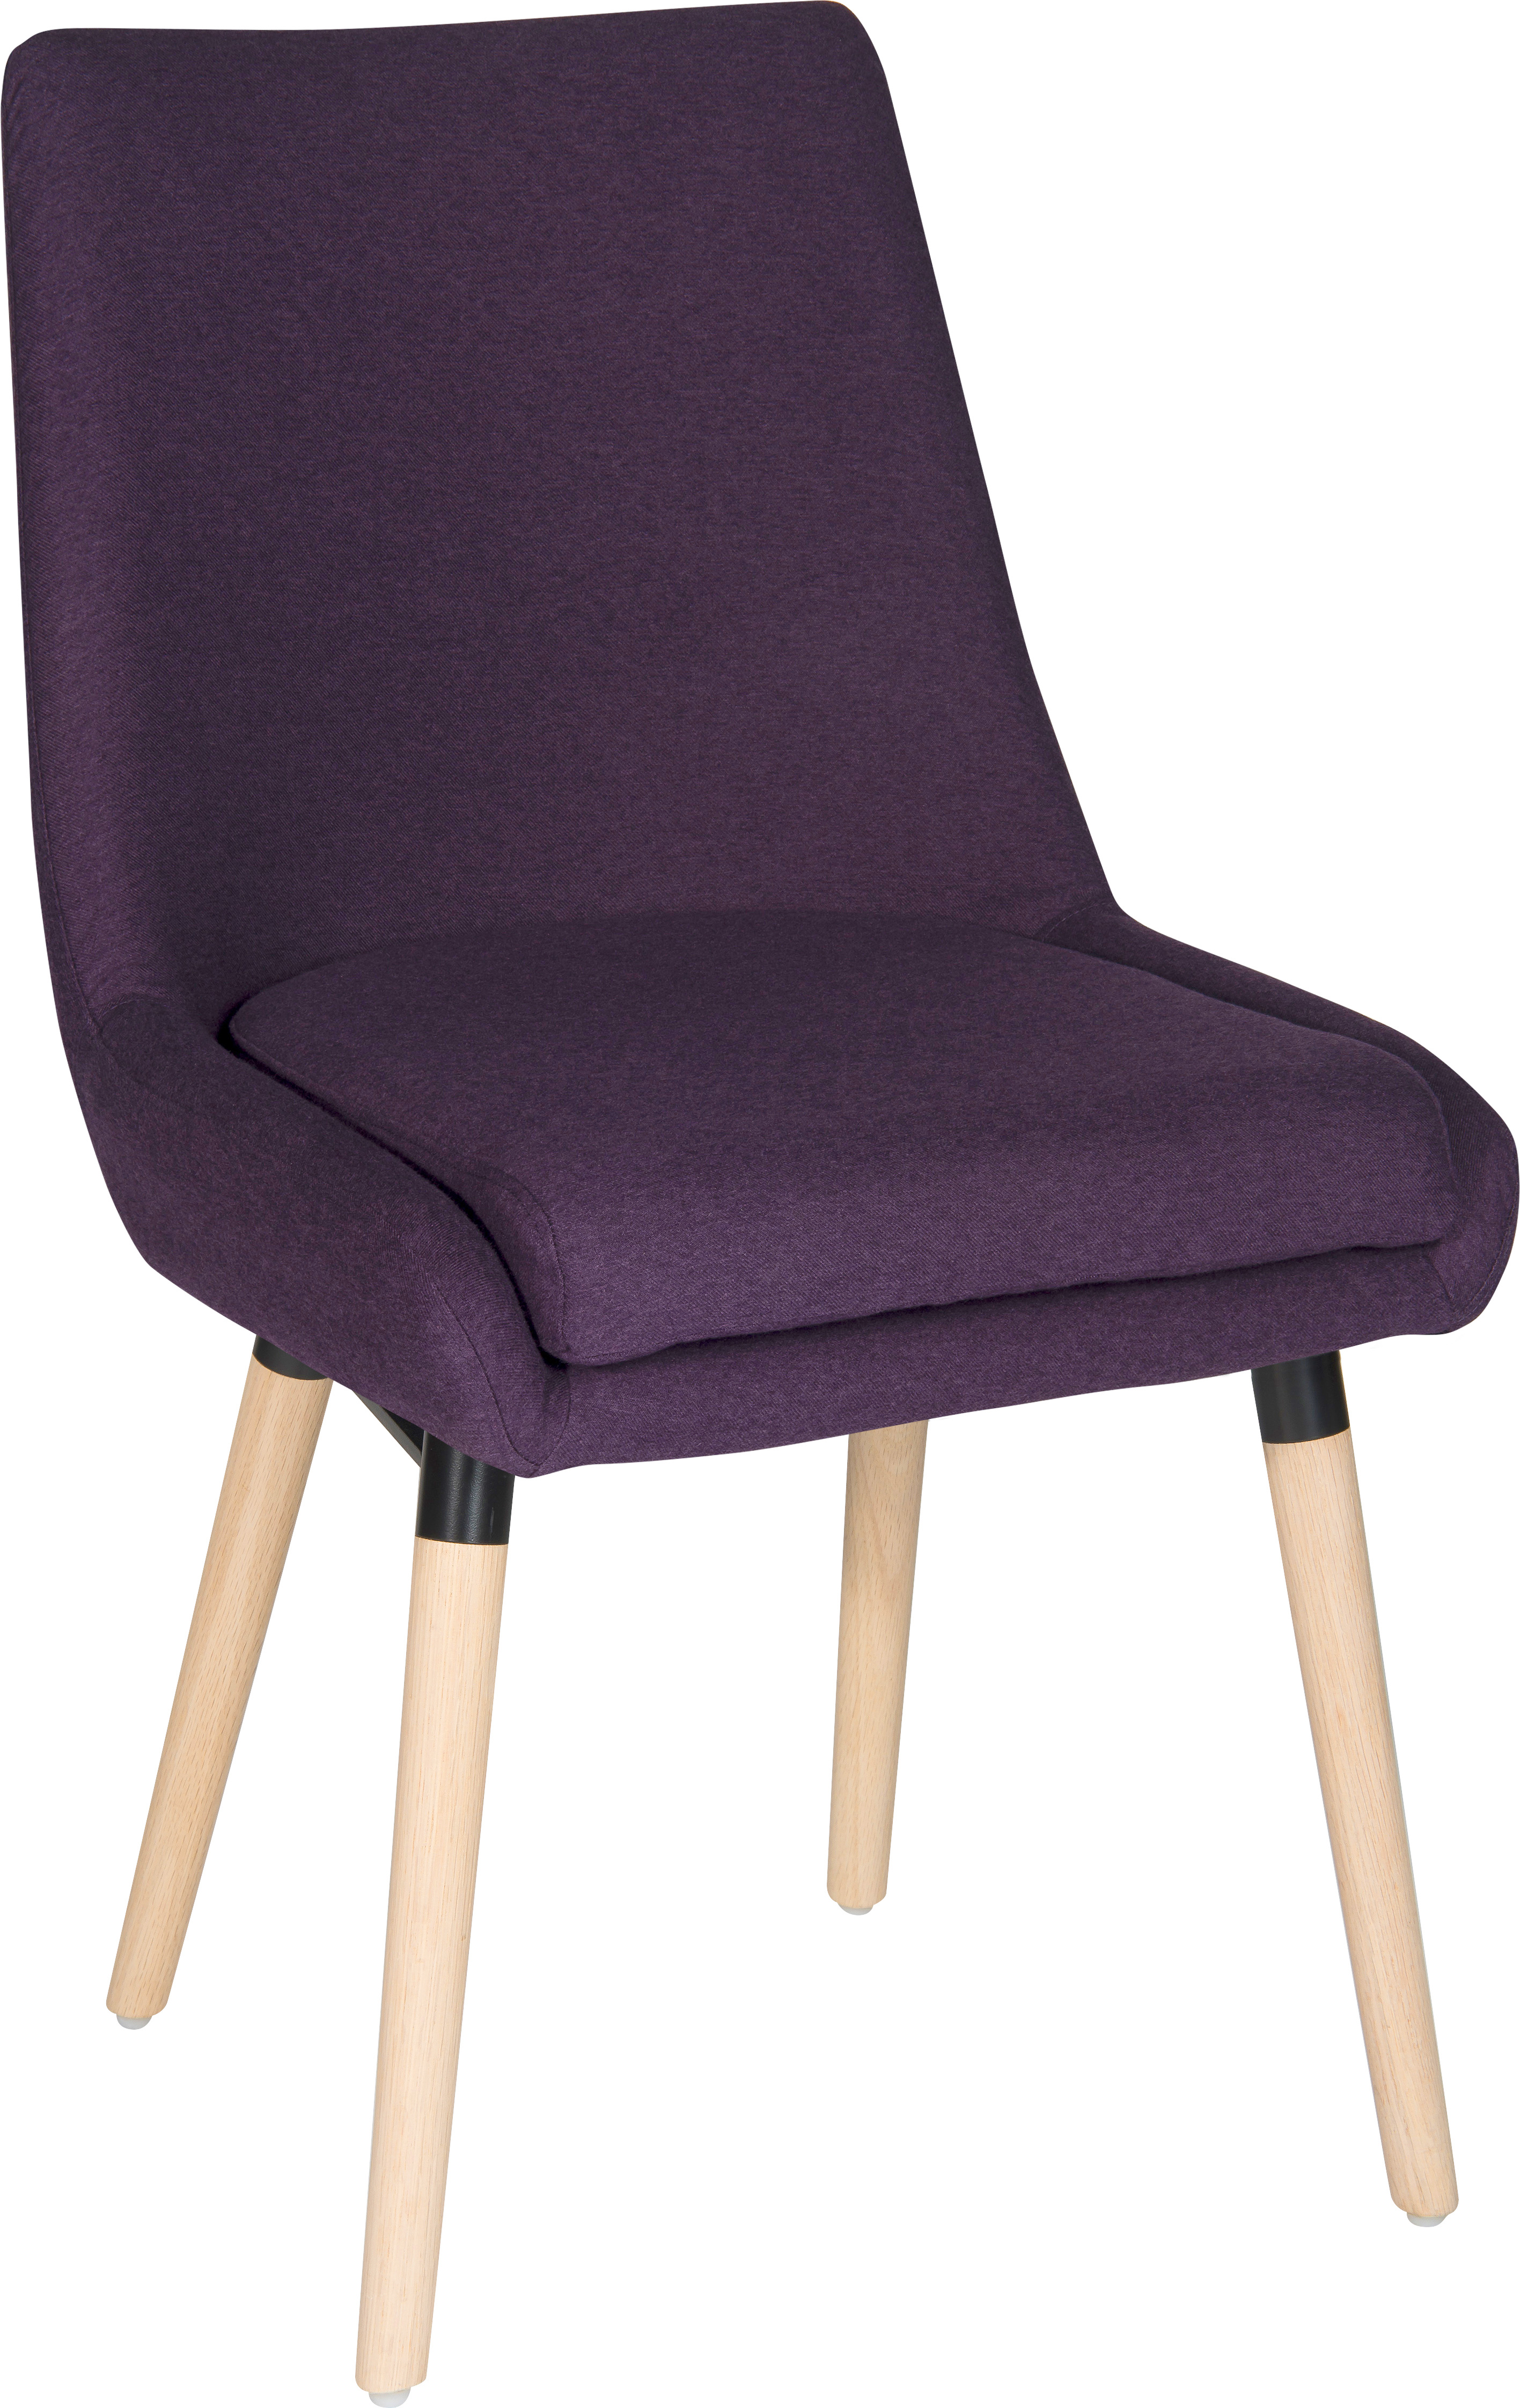 Teknik Office Welcome Reception Chairs Plum Soft Brushed Fabric Wooden Oak Legs Packs Of 2